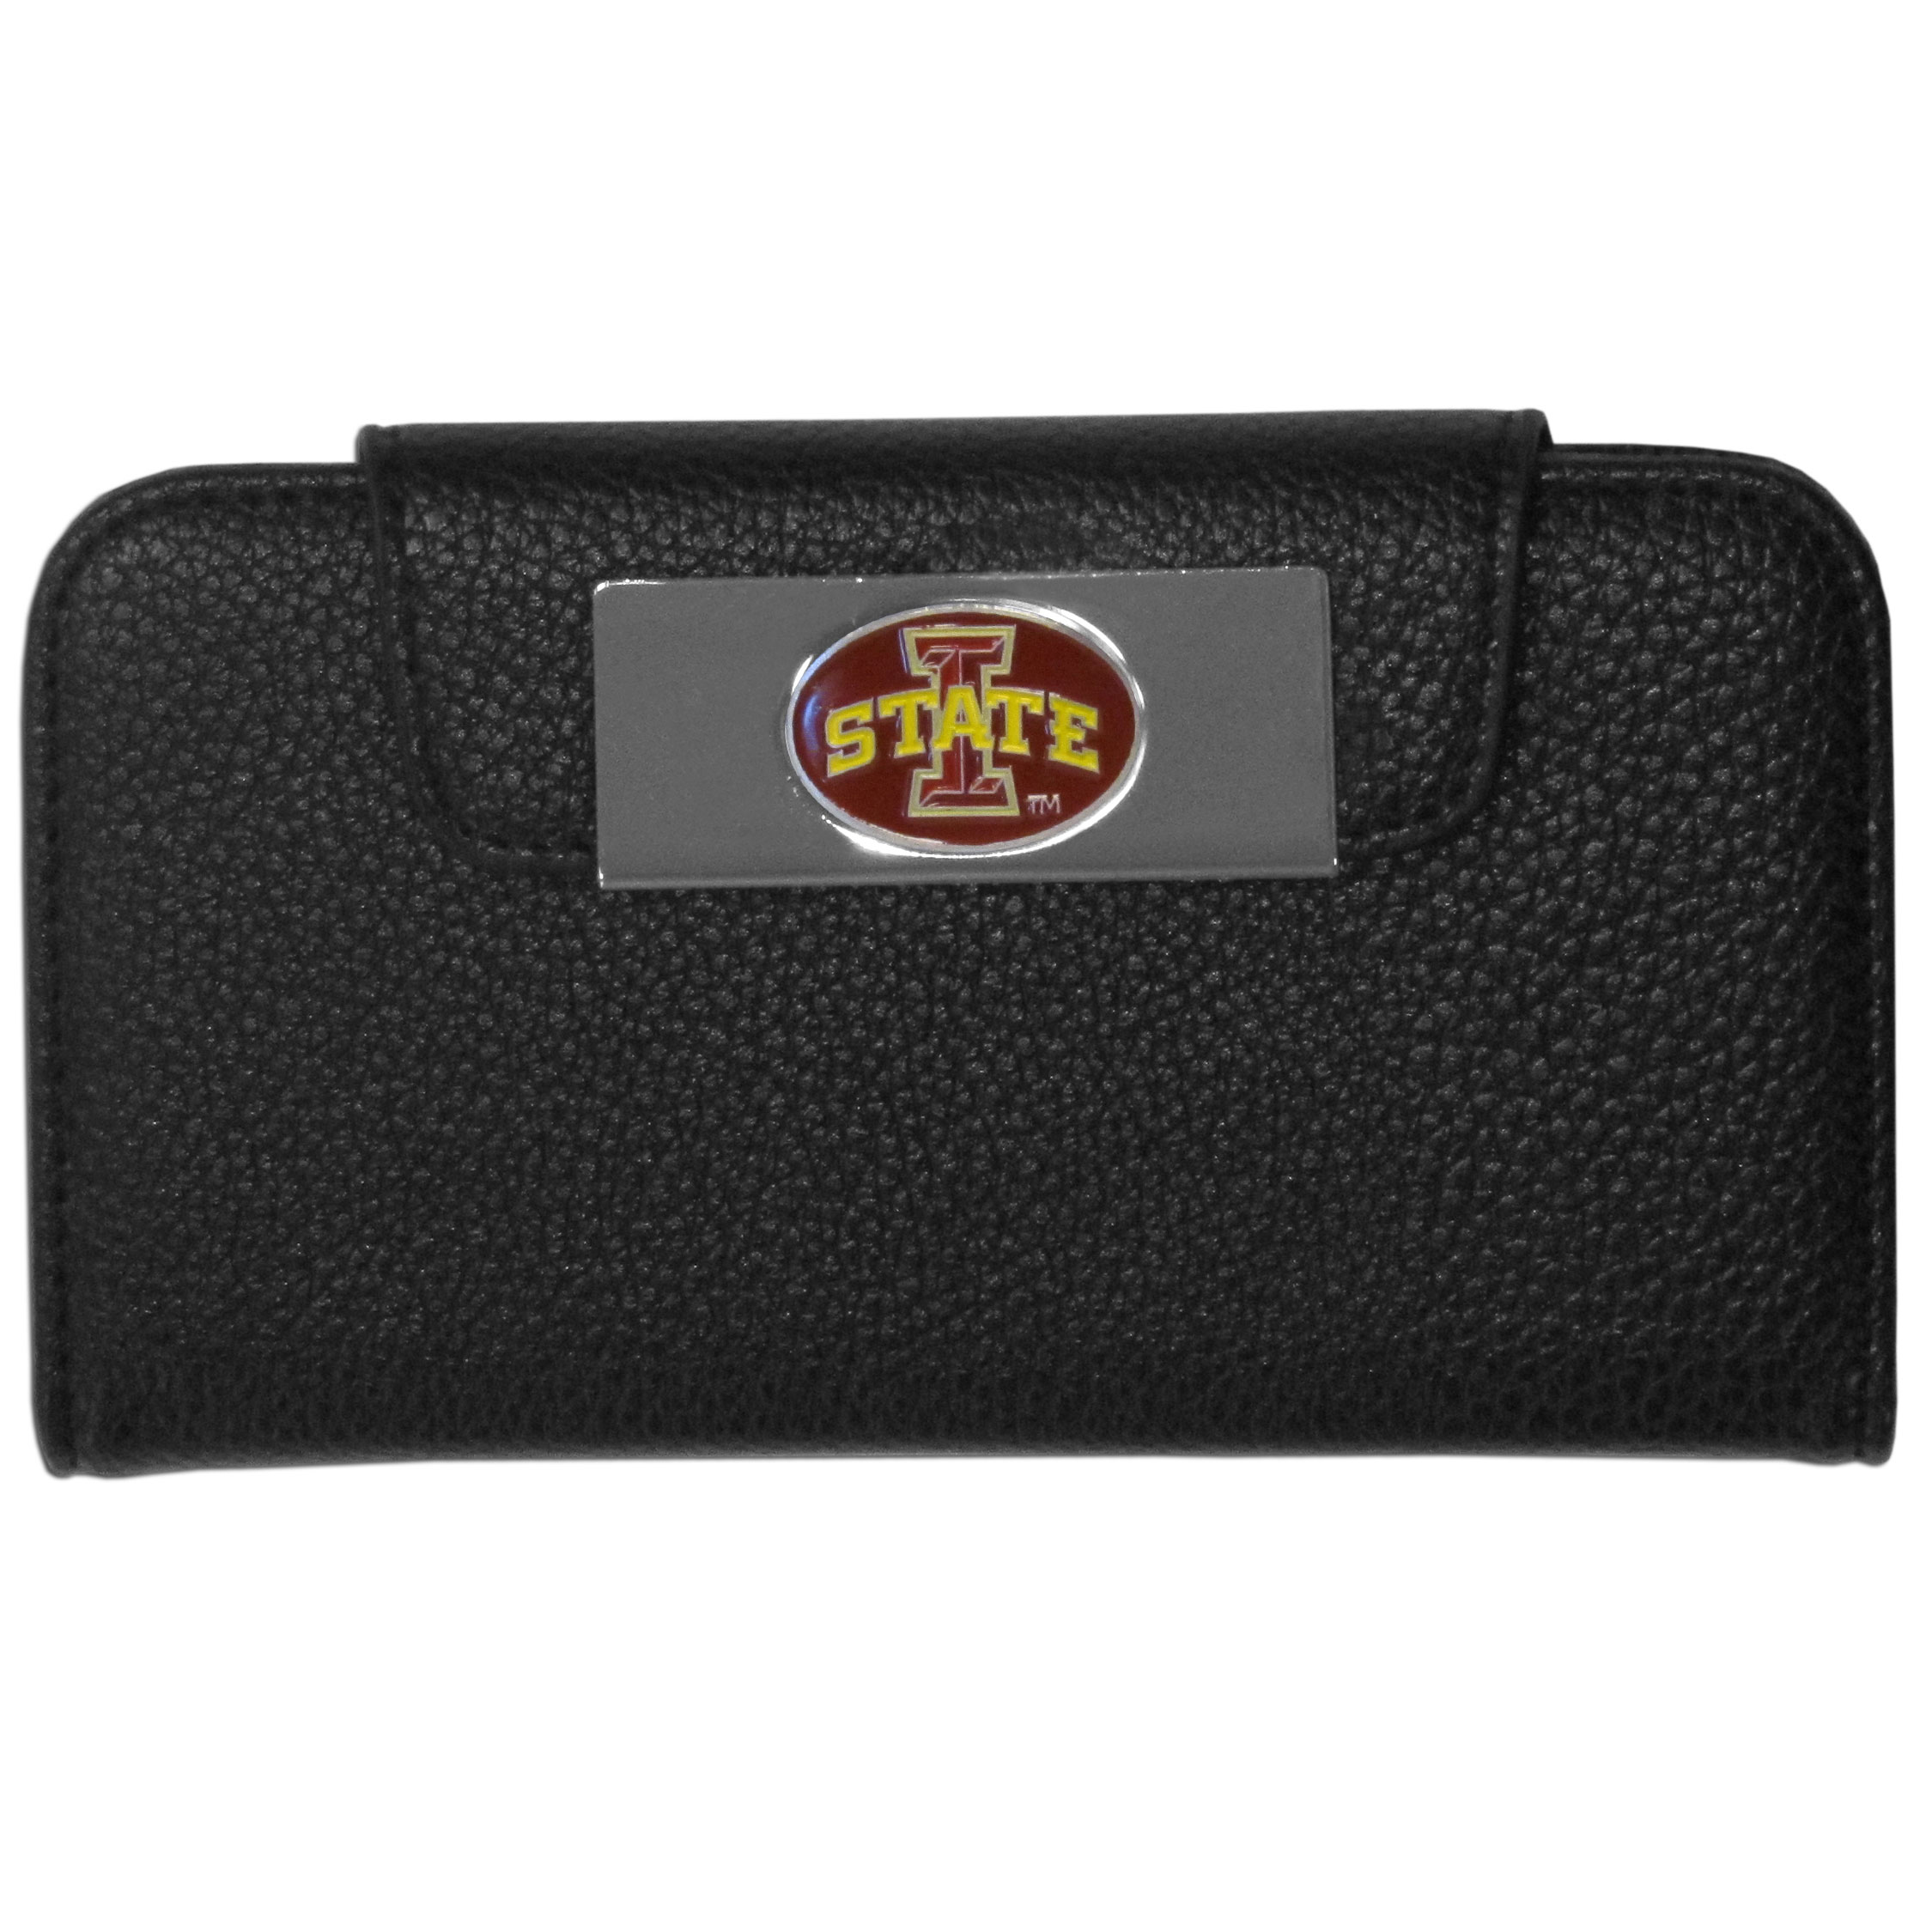 Iowa St. Cyclones Samsung Galaxy S4 Wallet Case - This new & wildly popular case is ideal for those who like to travel light! The stylish case has an inner hard shell that securely holds your phone while allowing complete access to the phone's functionality. The flip cover has slots for credit cards, business cards and identification. The magnetic flip cover has a metal Iowa St. Cyclones emblem on a high polish chrome backing. Fits the Samsung Galaxy S4